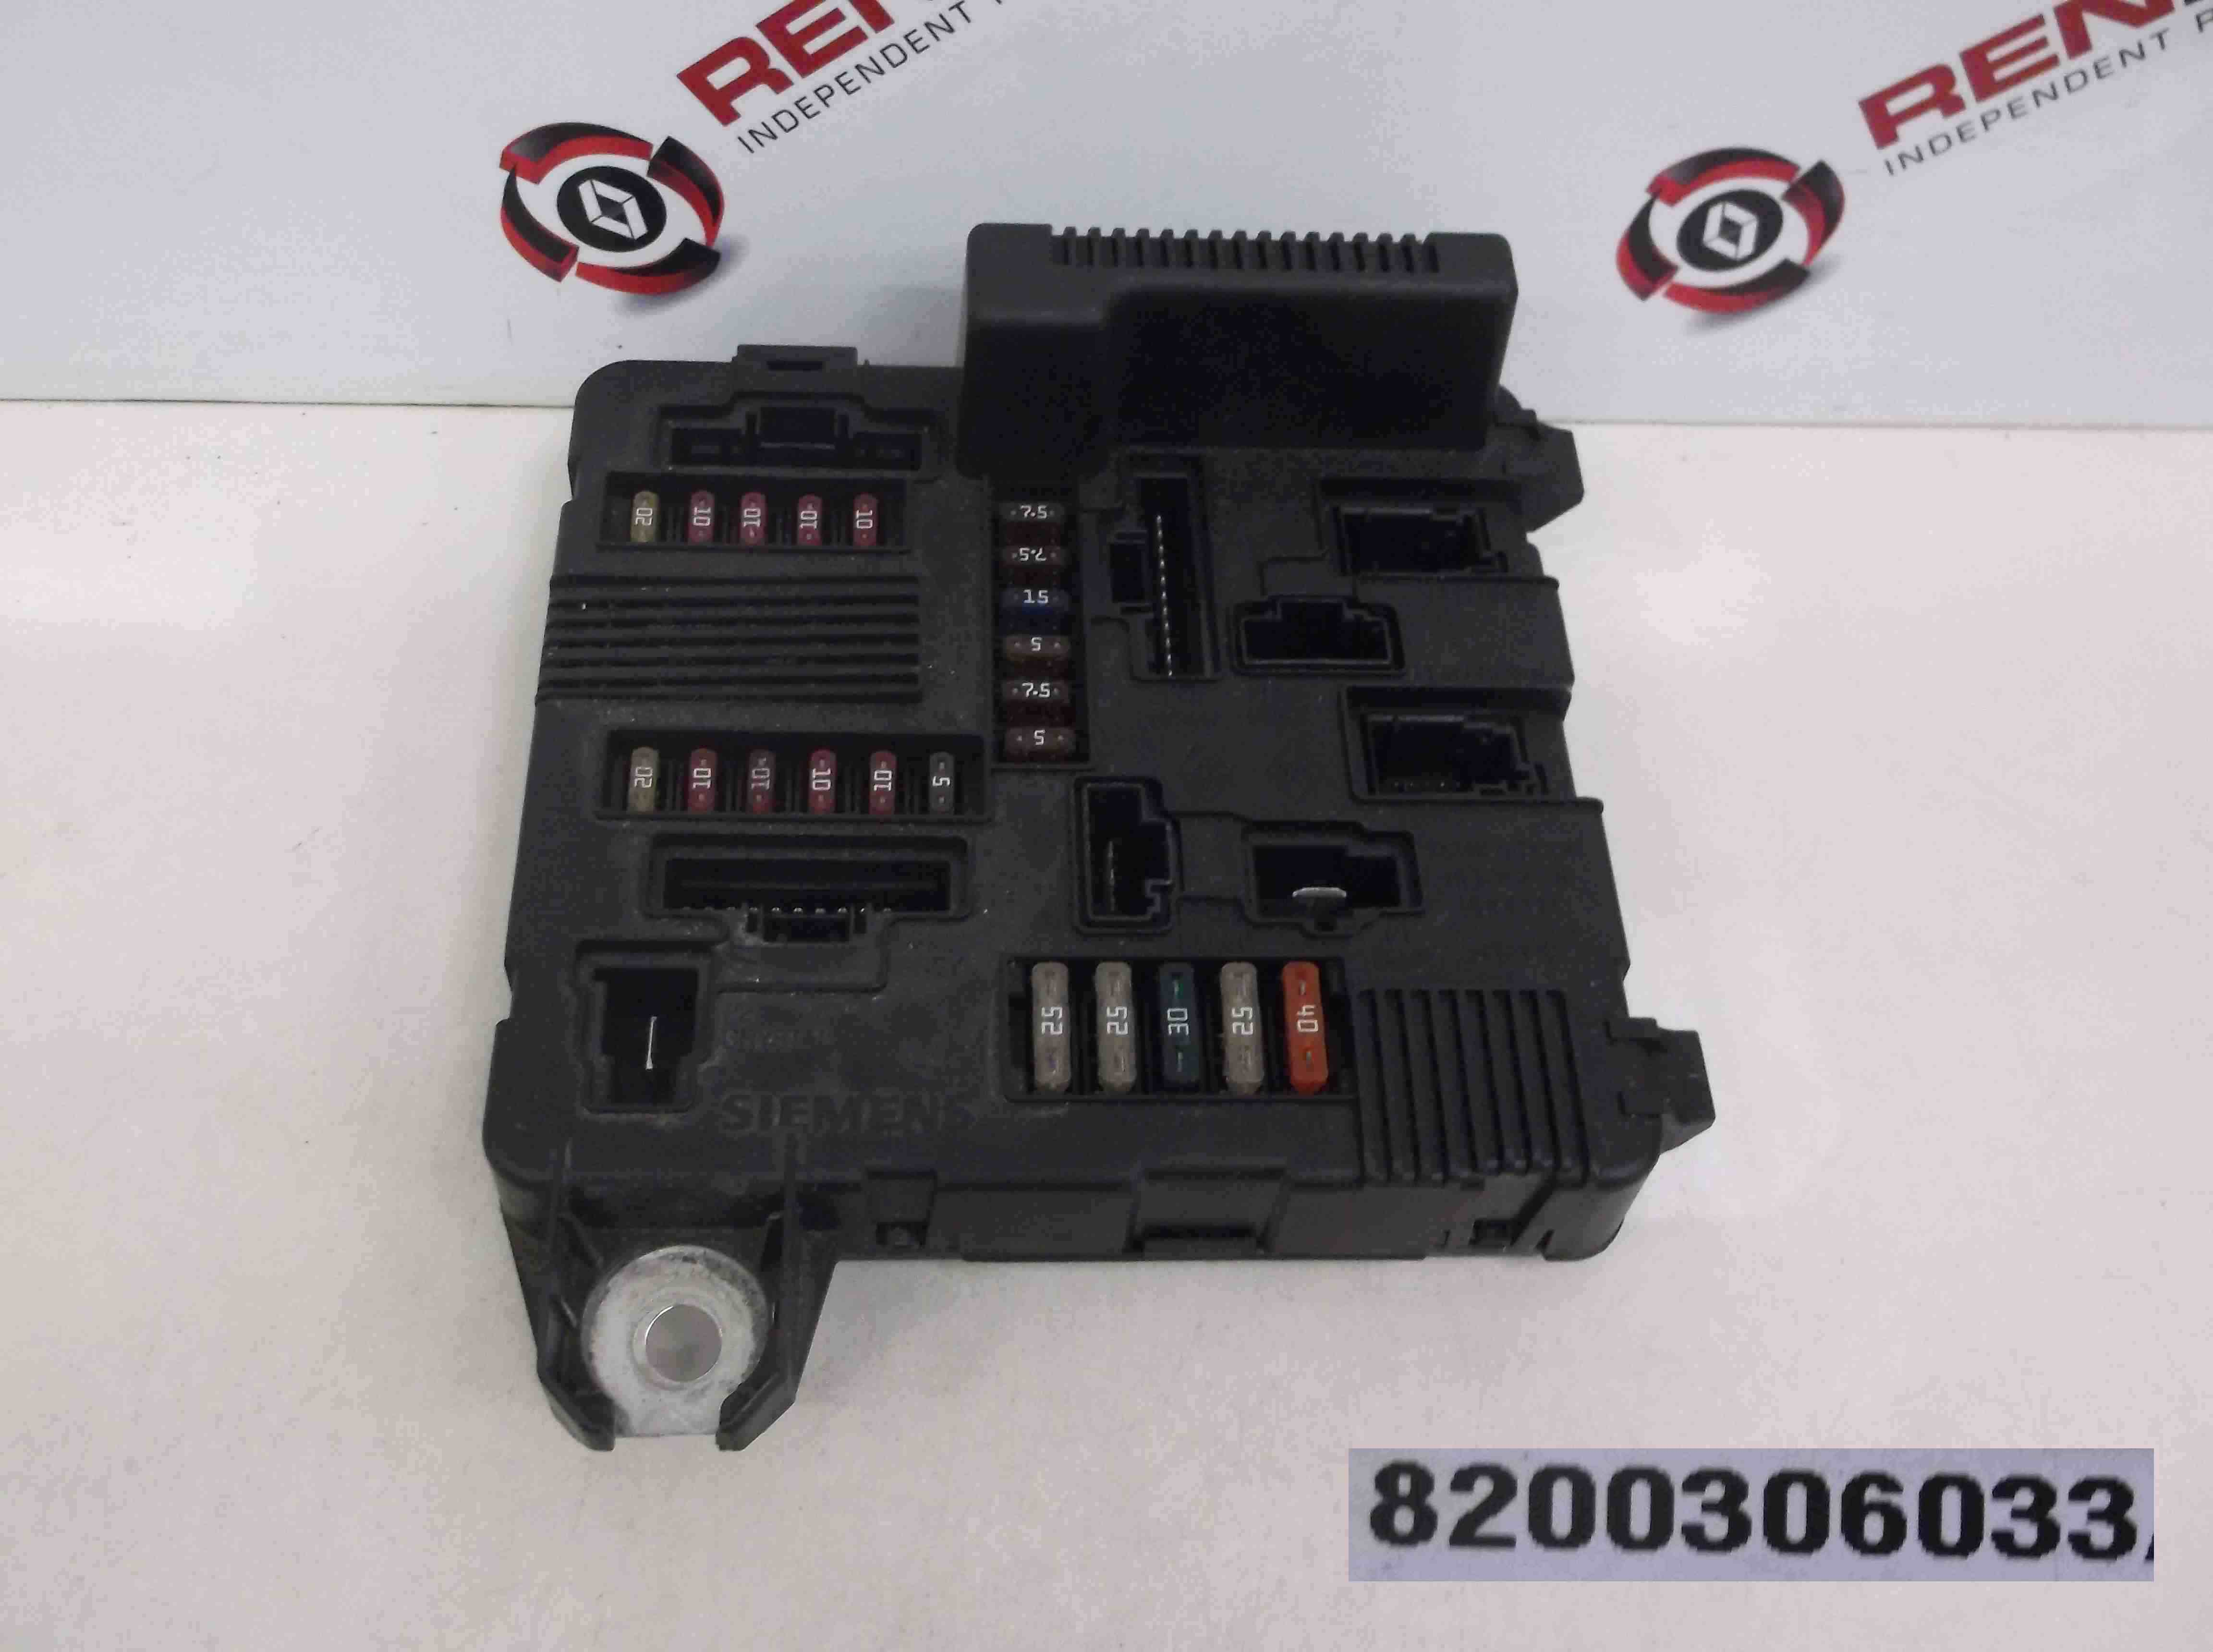 Renault Megane + Scenic 2002-2006 Engine Bay Fuse Box UPC 8200306033  8200306032 - Store - Renault Breakers - Used Renault Car Parts & Spares  Specialist